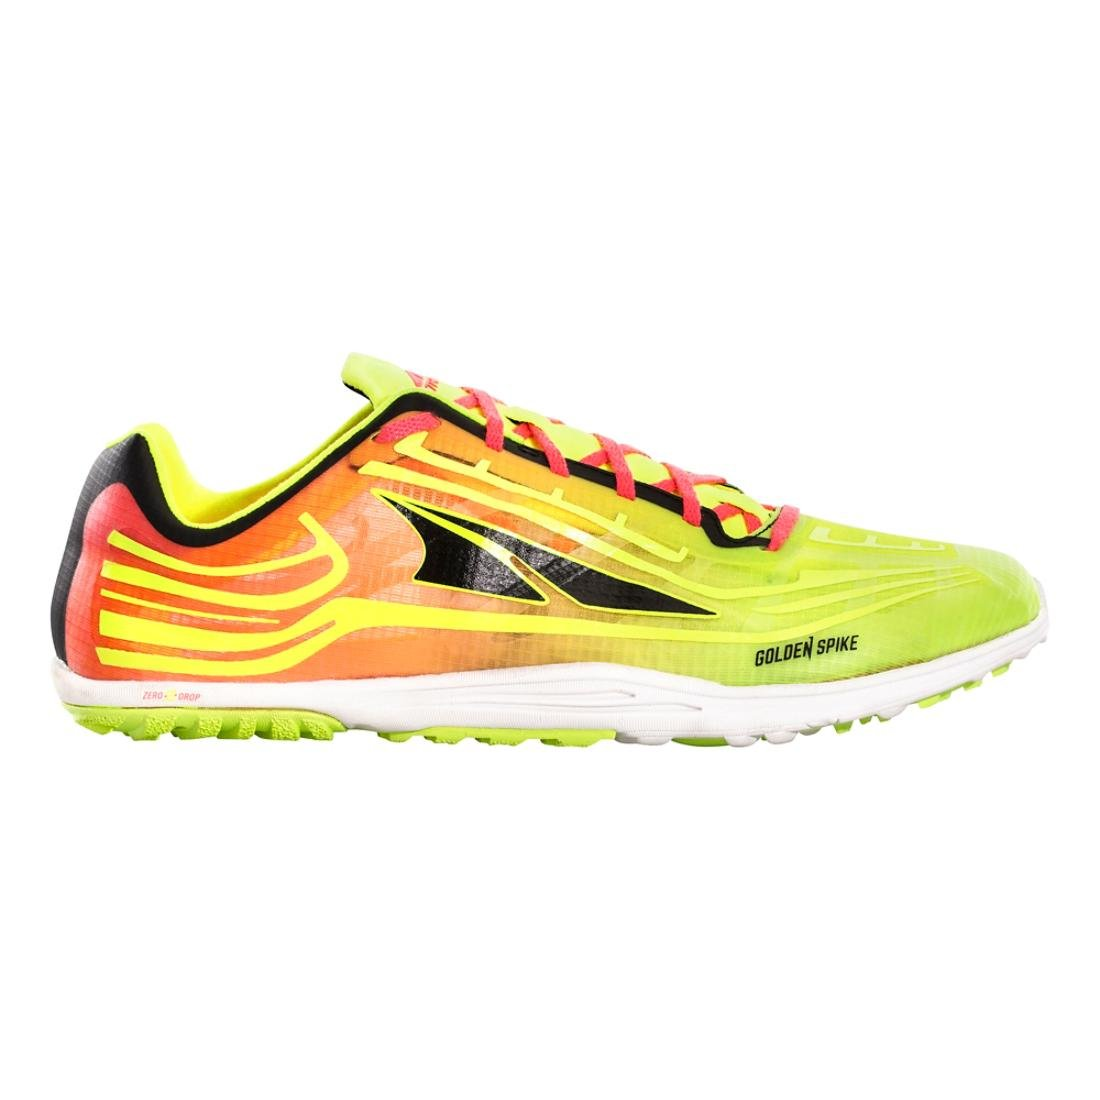 Altra Men's Golden Spike Running Shoe B01MQYIL75 15 M US Lime/Pink